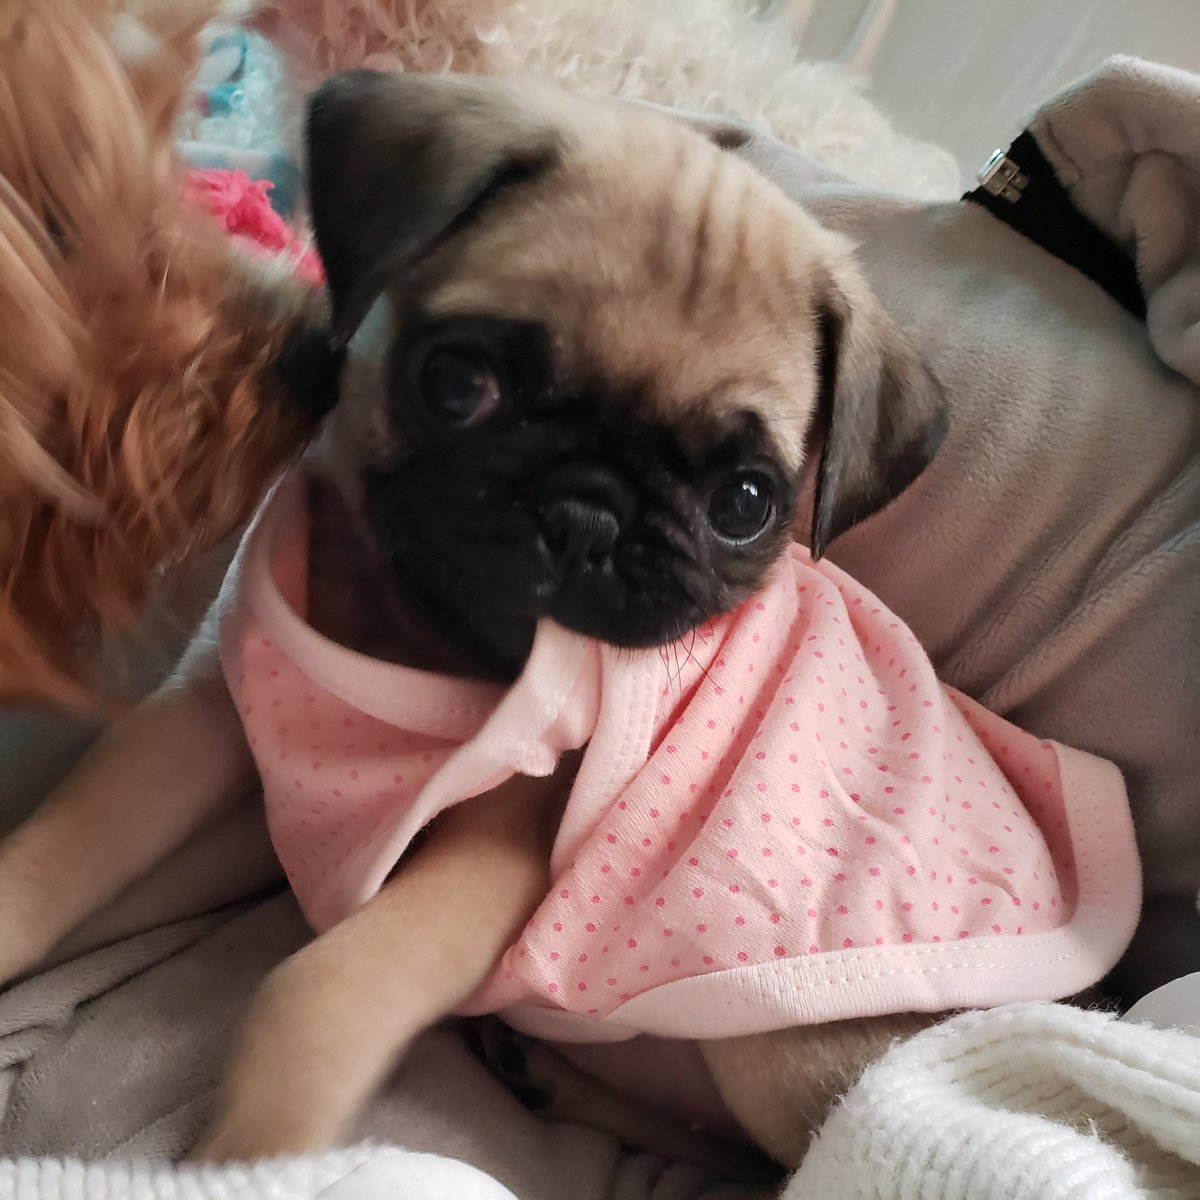 I can't stand the cuteness...she can't stand her shirt lol   #pugs #puglife #puppy #dogs #babydog #pug #CutePuppies #CuteDog #MyPugMeiMei #ilovepugs #puppylove #dogsofinstagram<br>http://pic.twitter.com/h1IjjWQxIp